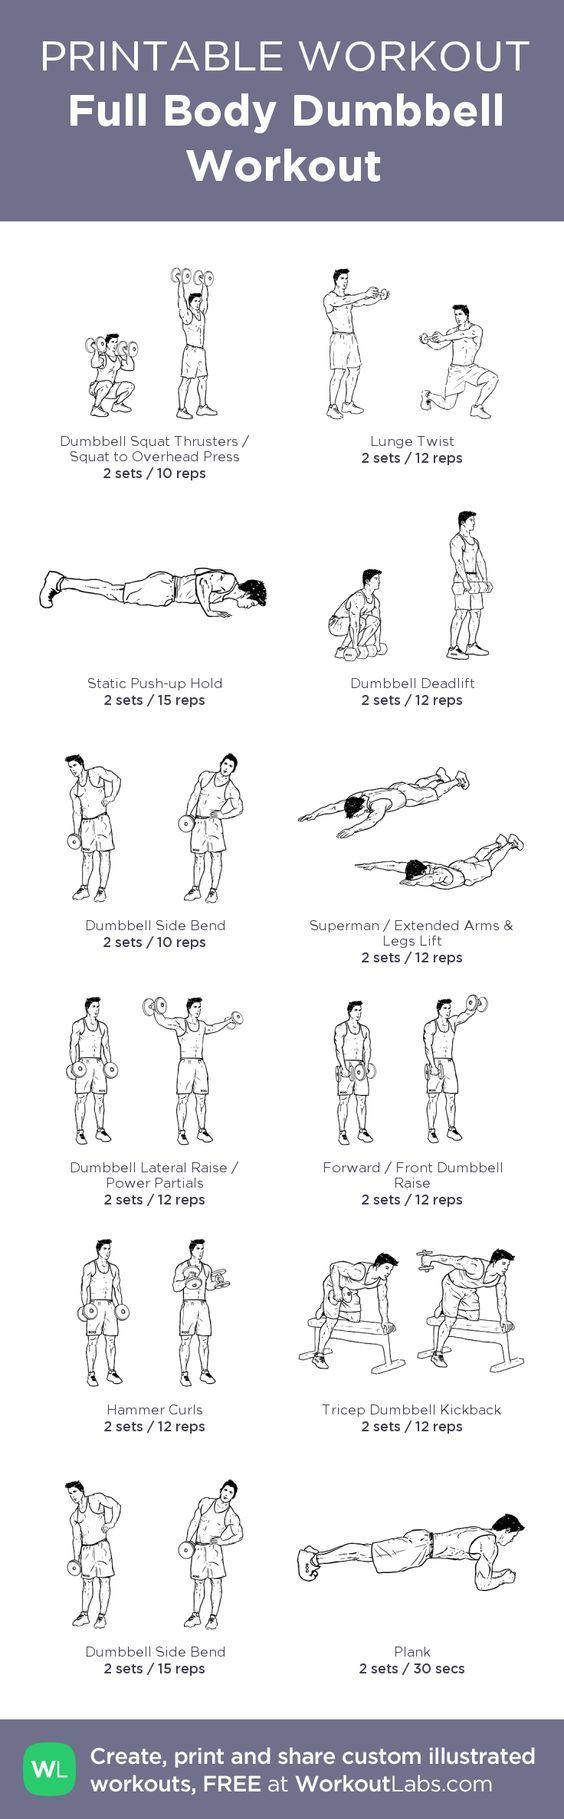 Full Body Dumbbell Workout: my visual workout created at